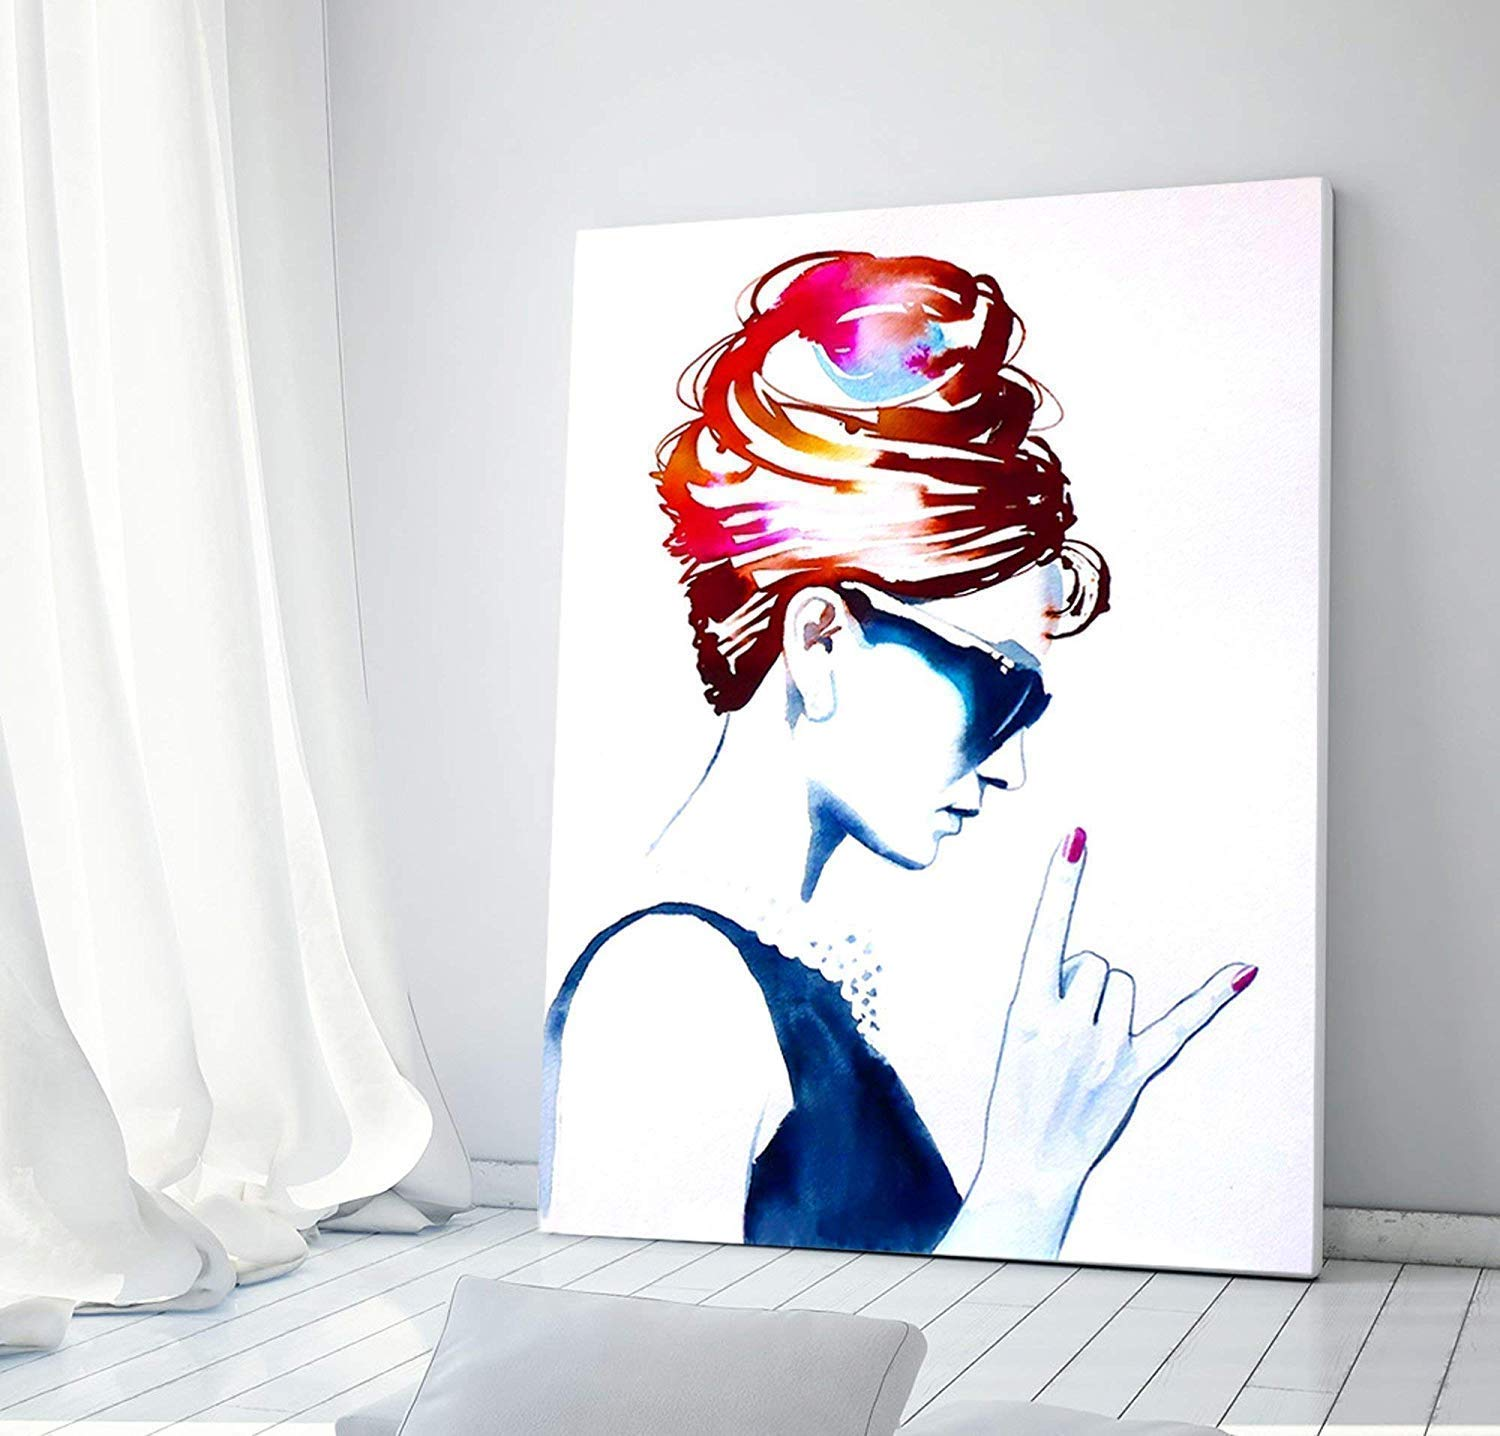 Audrey Rocks Wall Decor - Unique Contemporary Art For Salon - Nail, Beauty & Hair Salon Decor